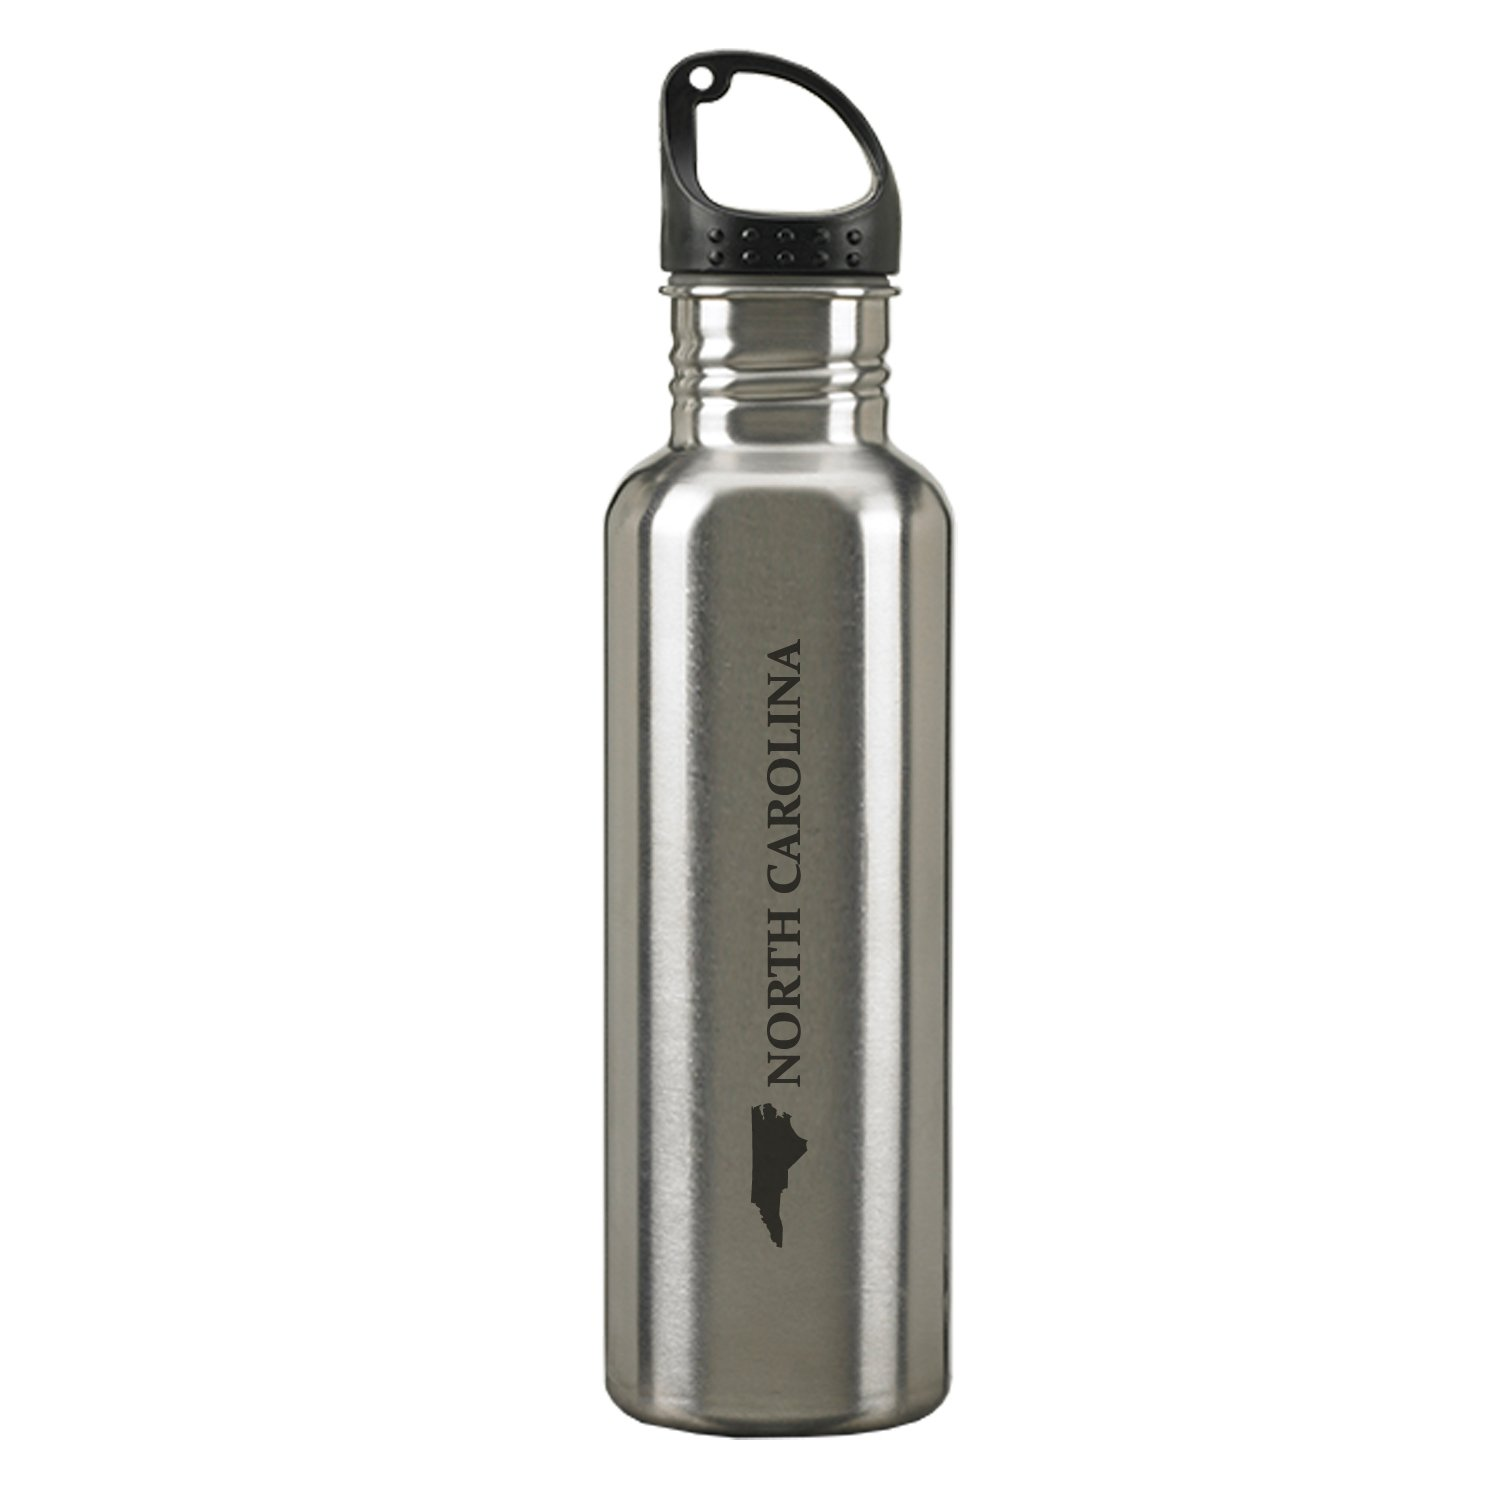 North Carolina-State Outline-24-ounce Sport Water Bottle-Silver LXG Inc